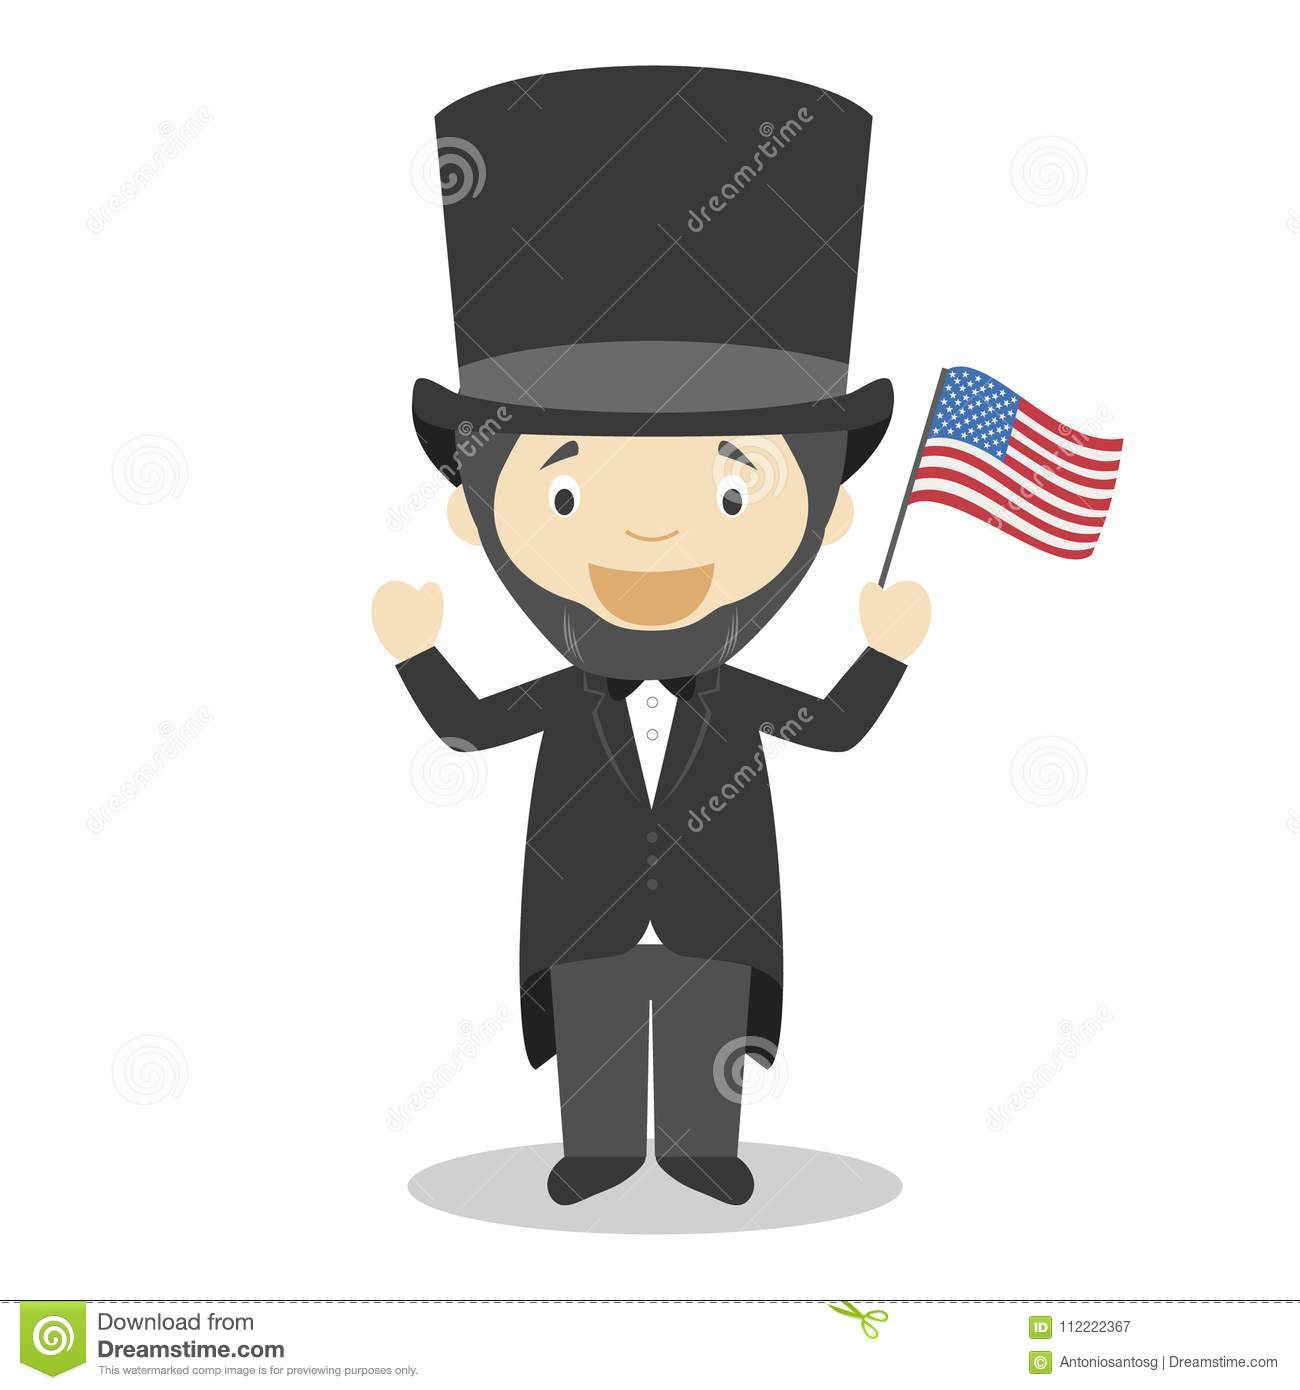 Abraham Lincoln Cartoon Character Vector Illustration Stock Vector